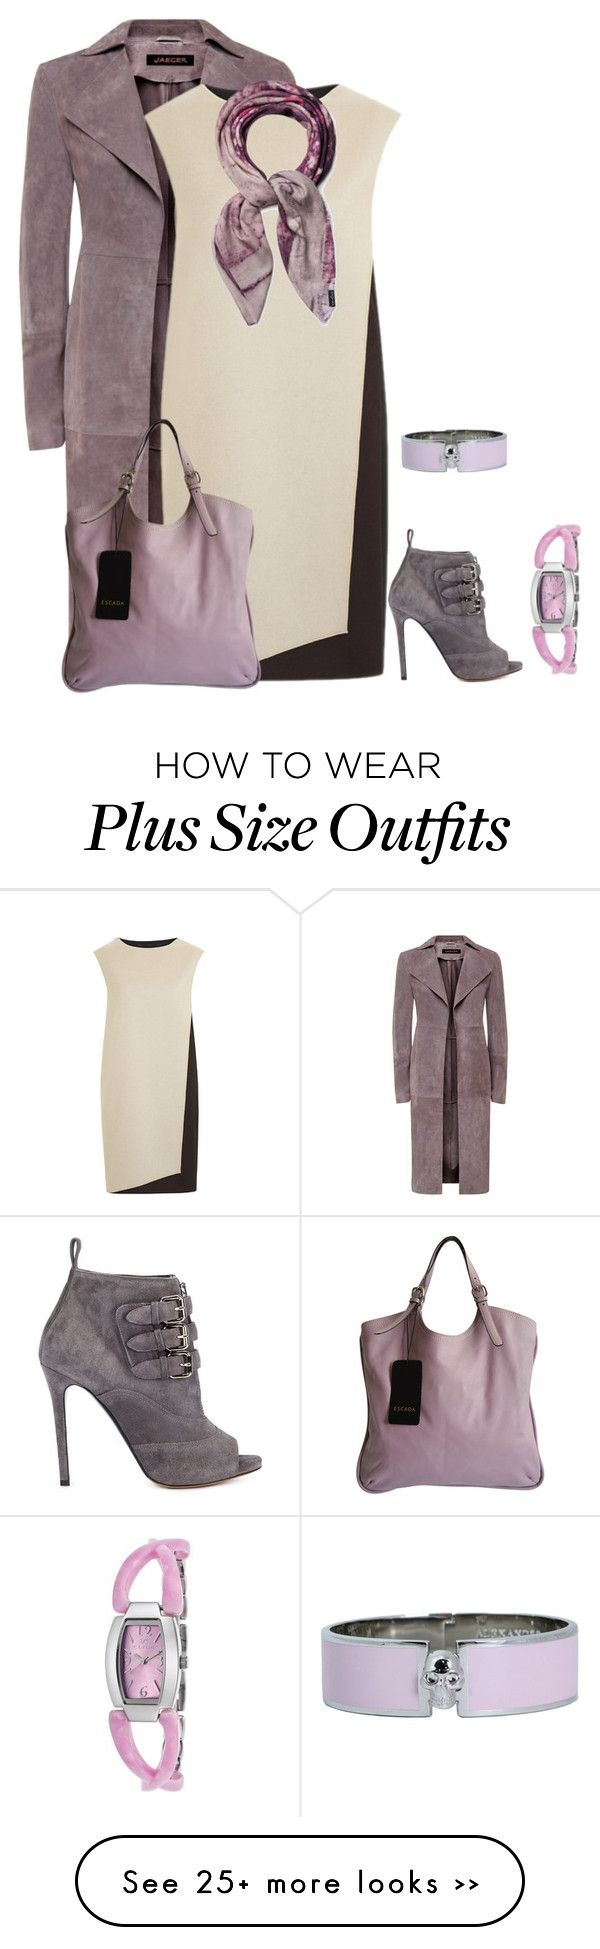 """""""outfit 2404"""" by natalyag on Polyvore featuring Jaeger, PINGHE, Tabitha Simmons, ESCADA, Alexander McQueen, Clyda and Fraas"""